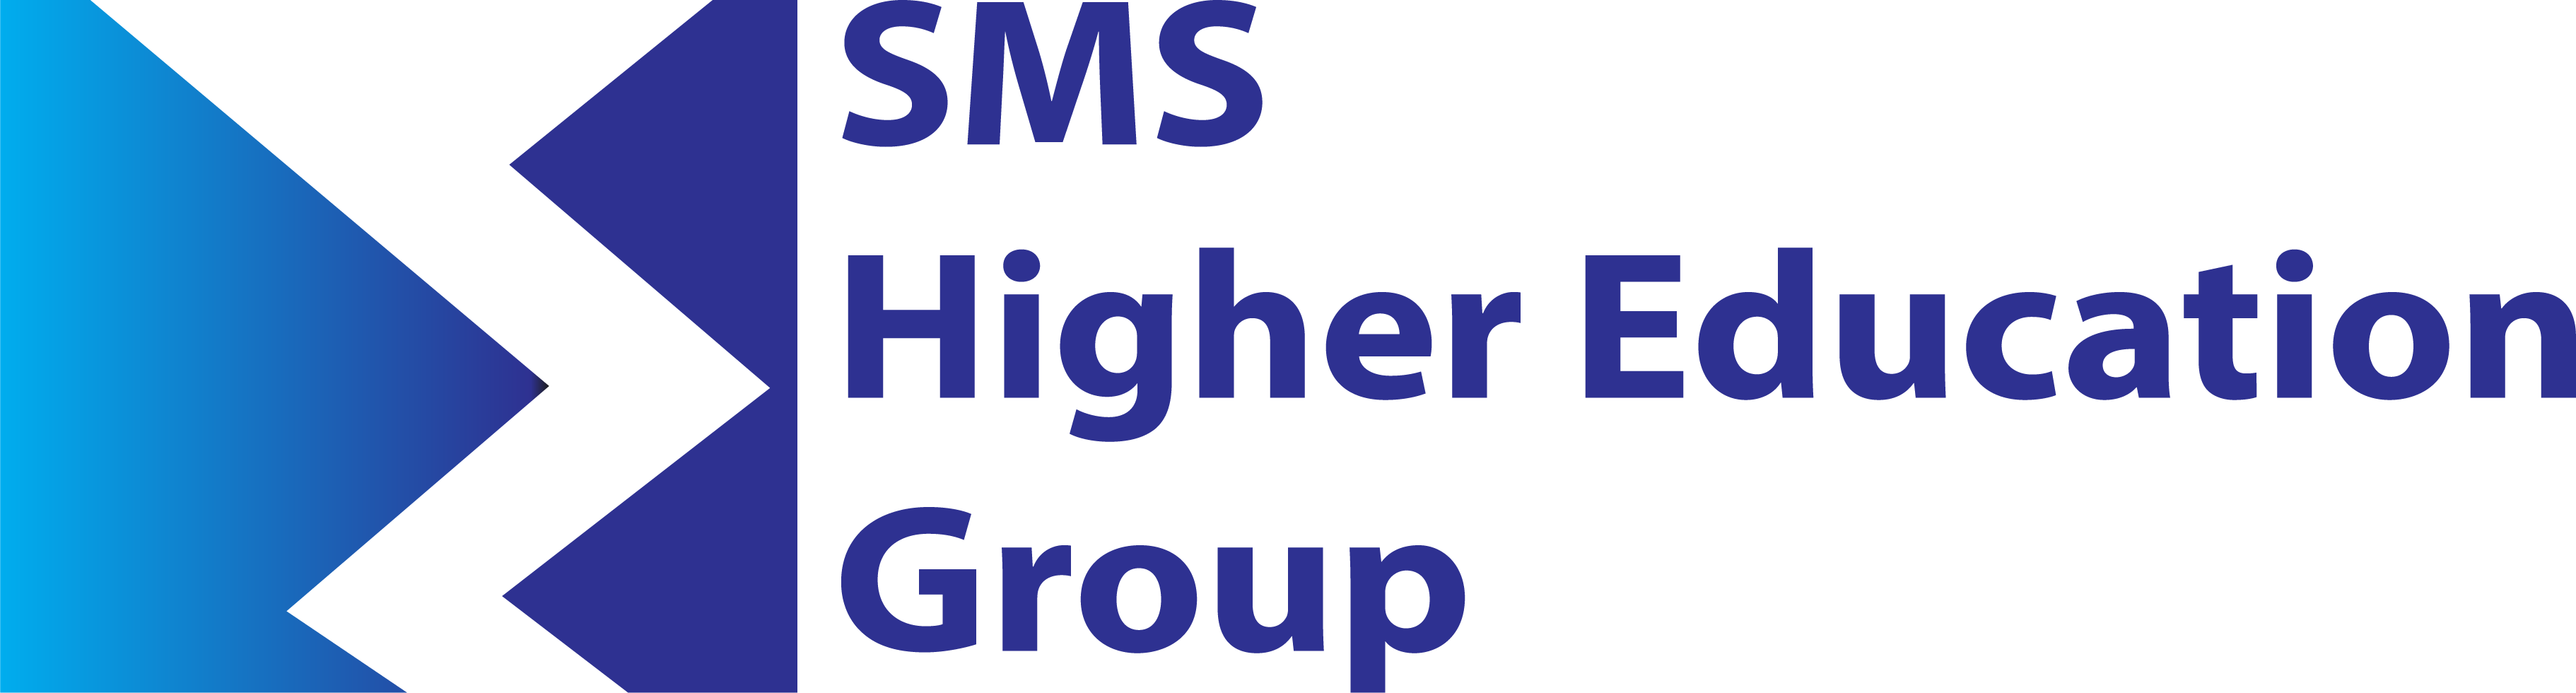 SMS Higher Education Group